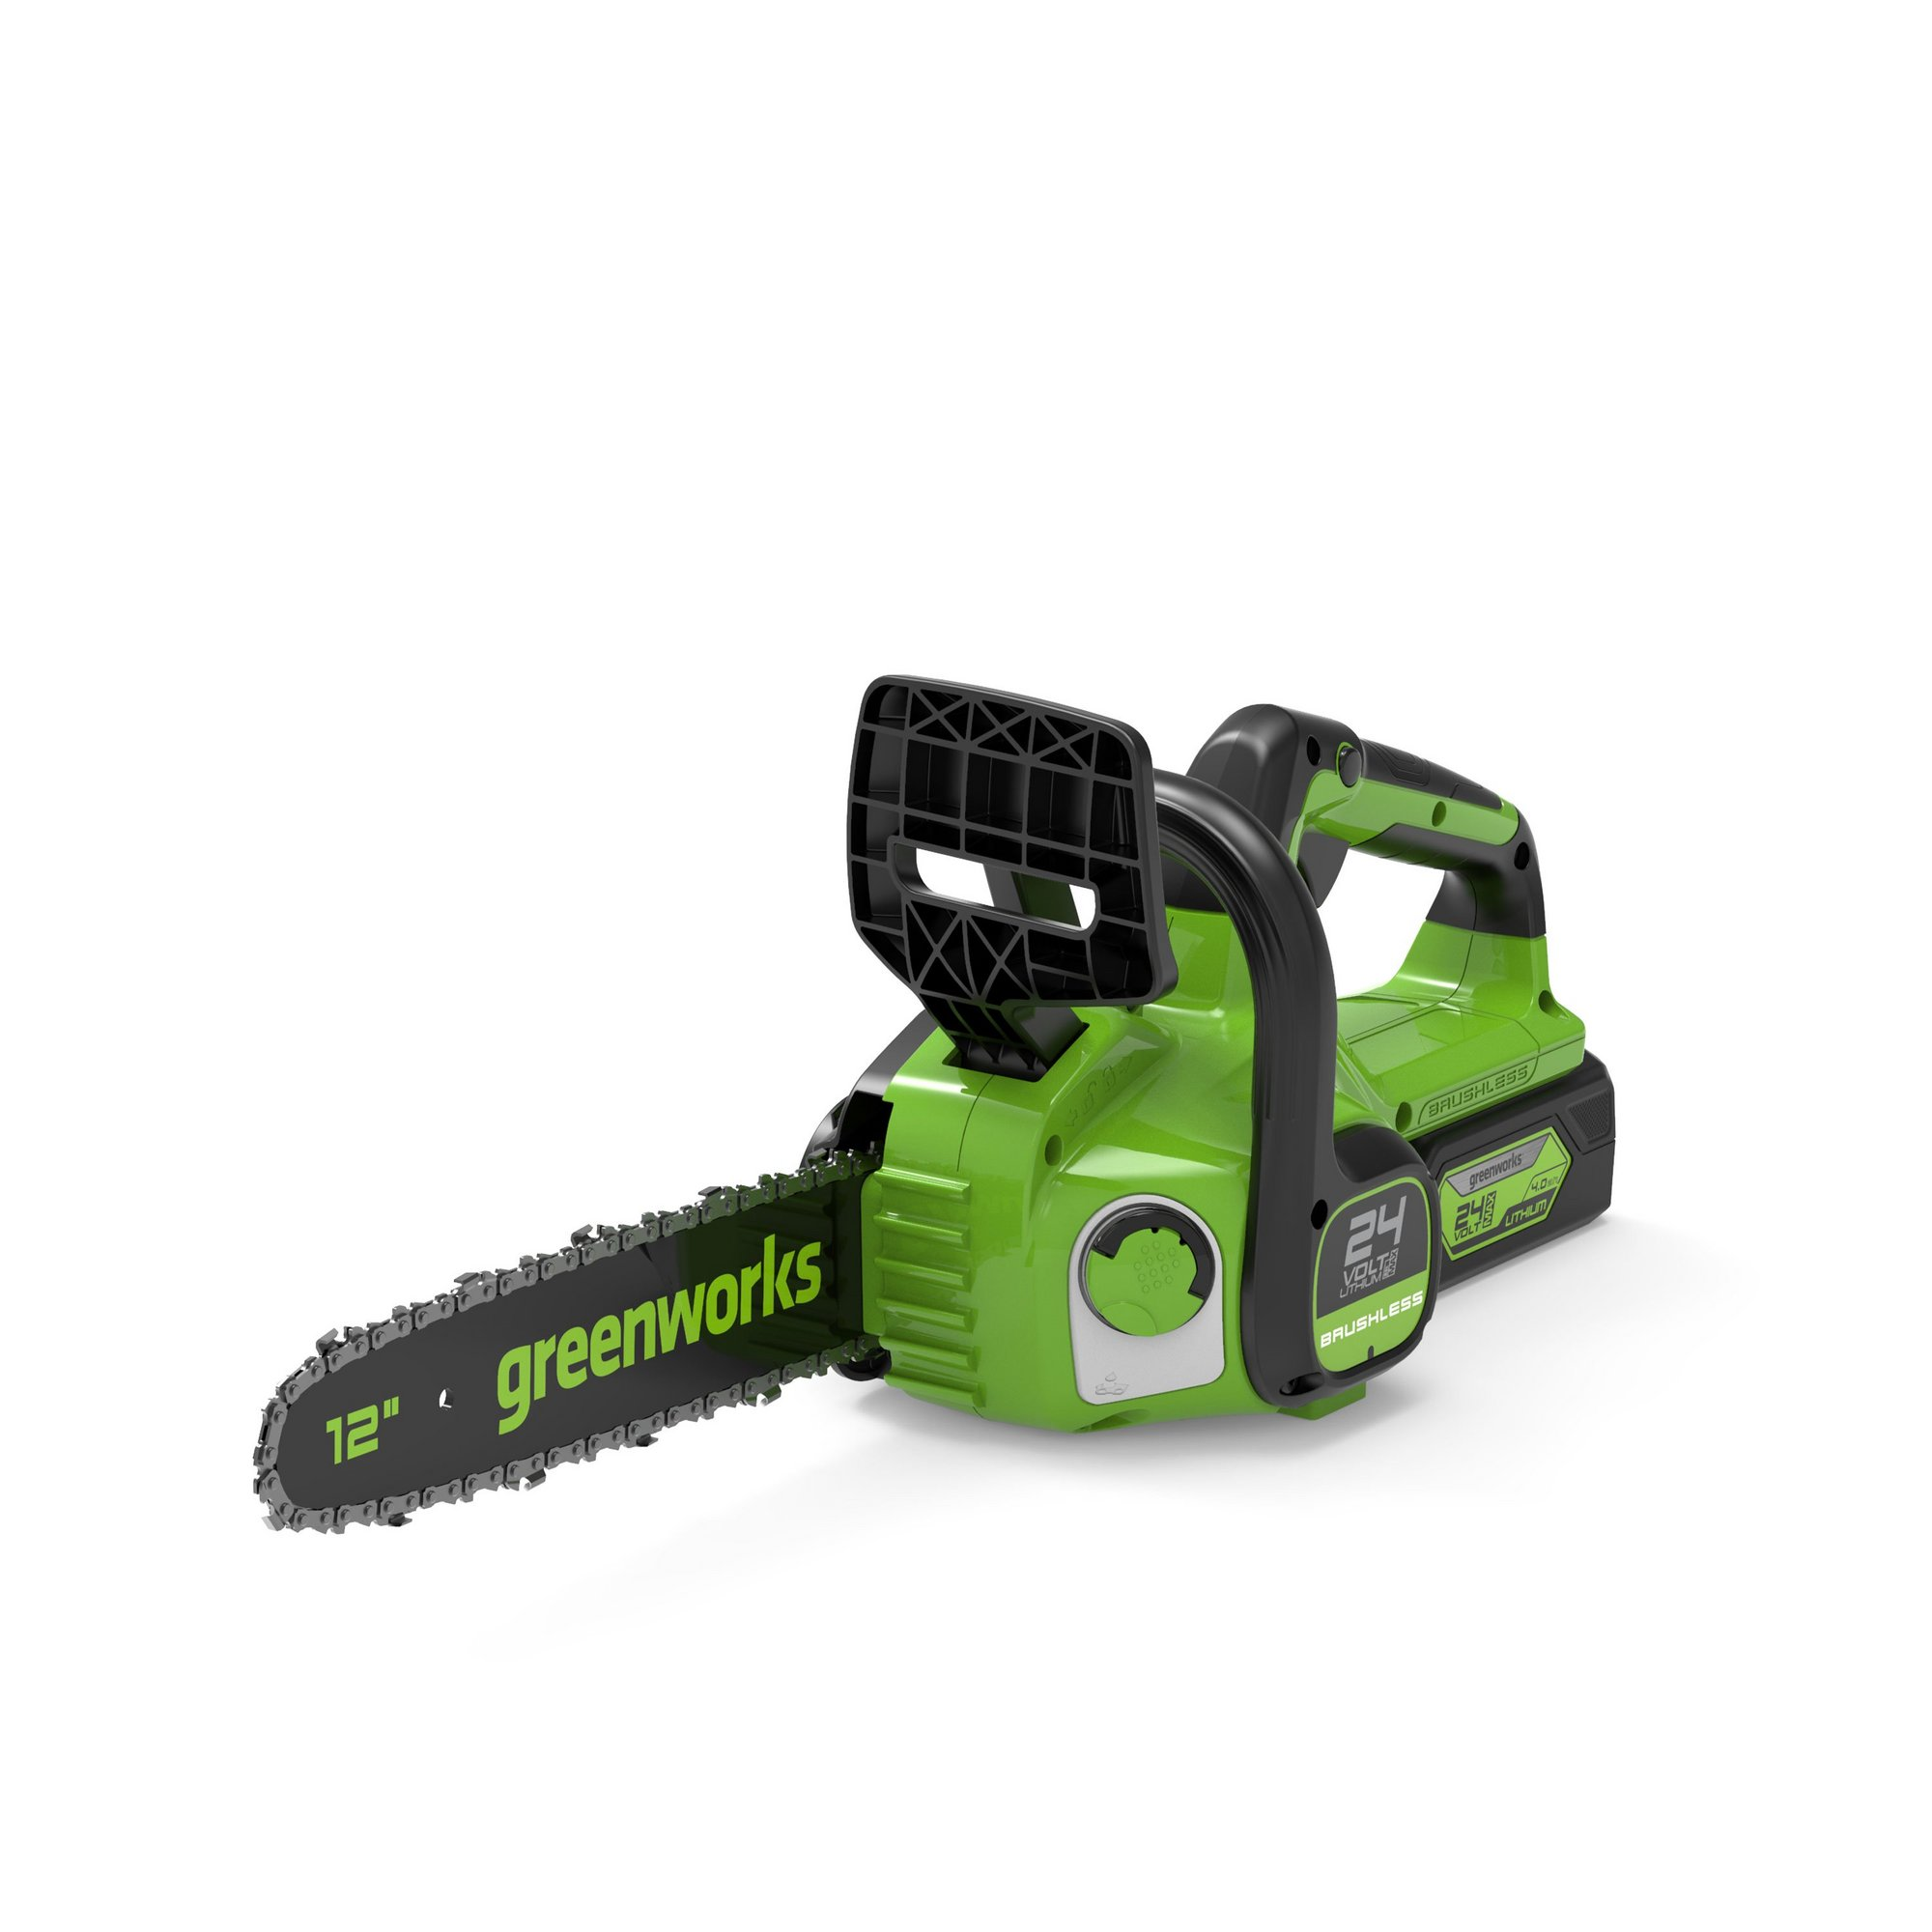 Image of Greenworks 24V Cordless 30cm Brushless Chainsaw with 4ah Battery ...